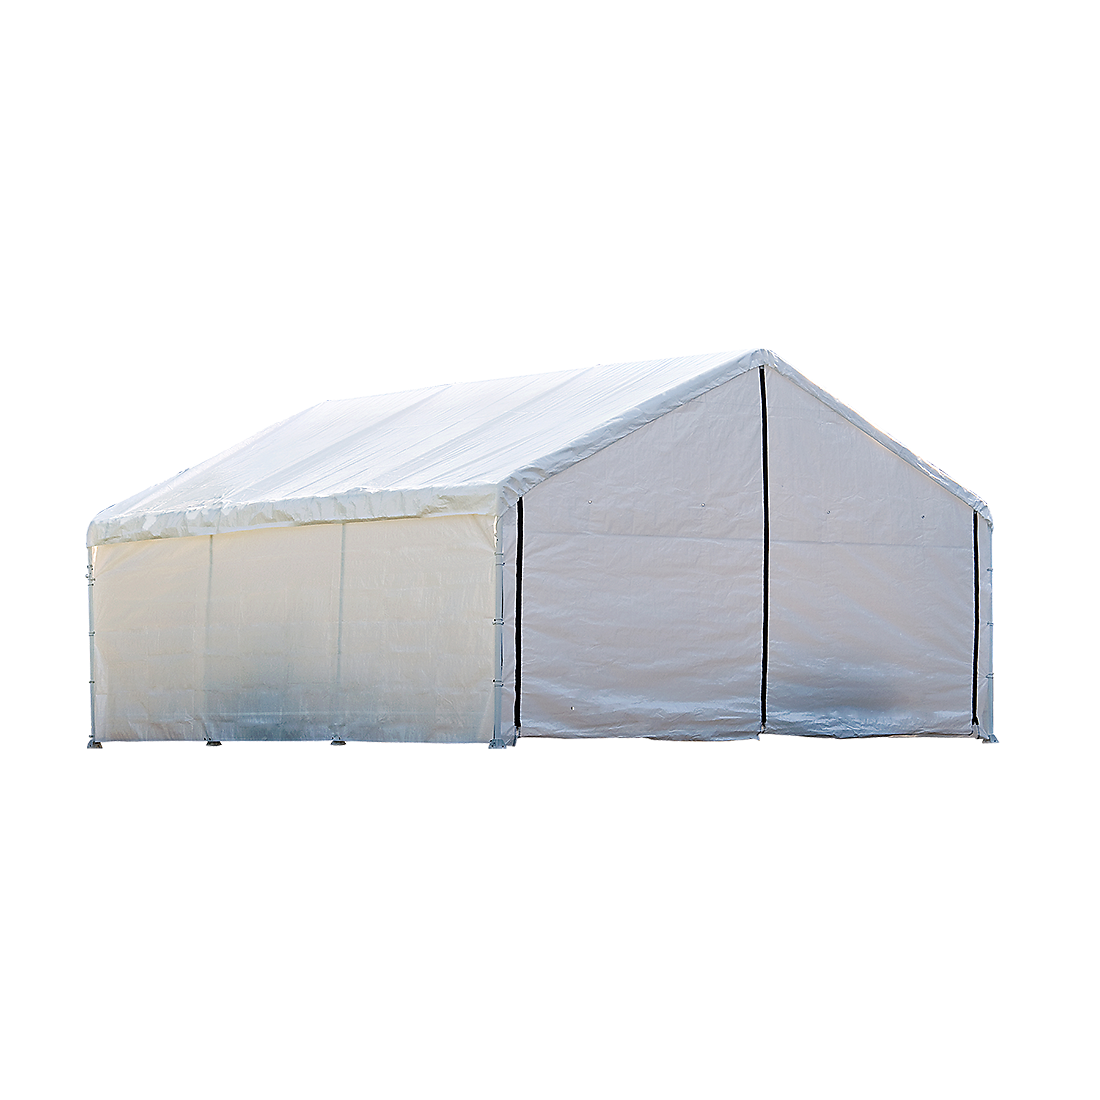 Enclosure Kit - Super Max Canopy 18 x 40 ft.